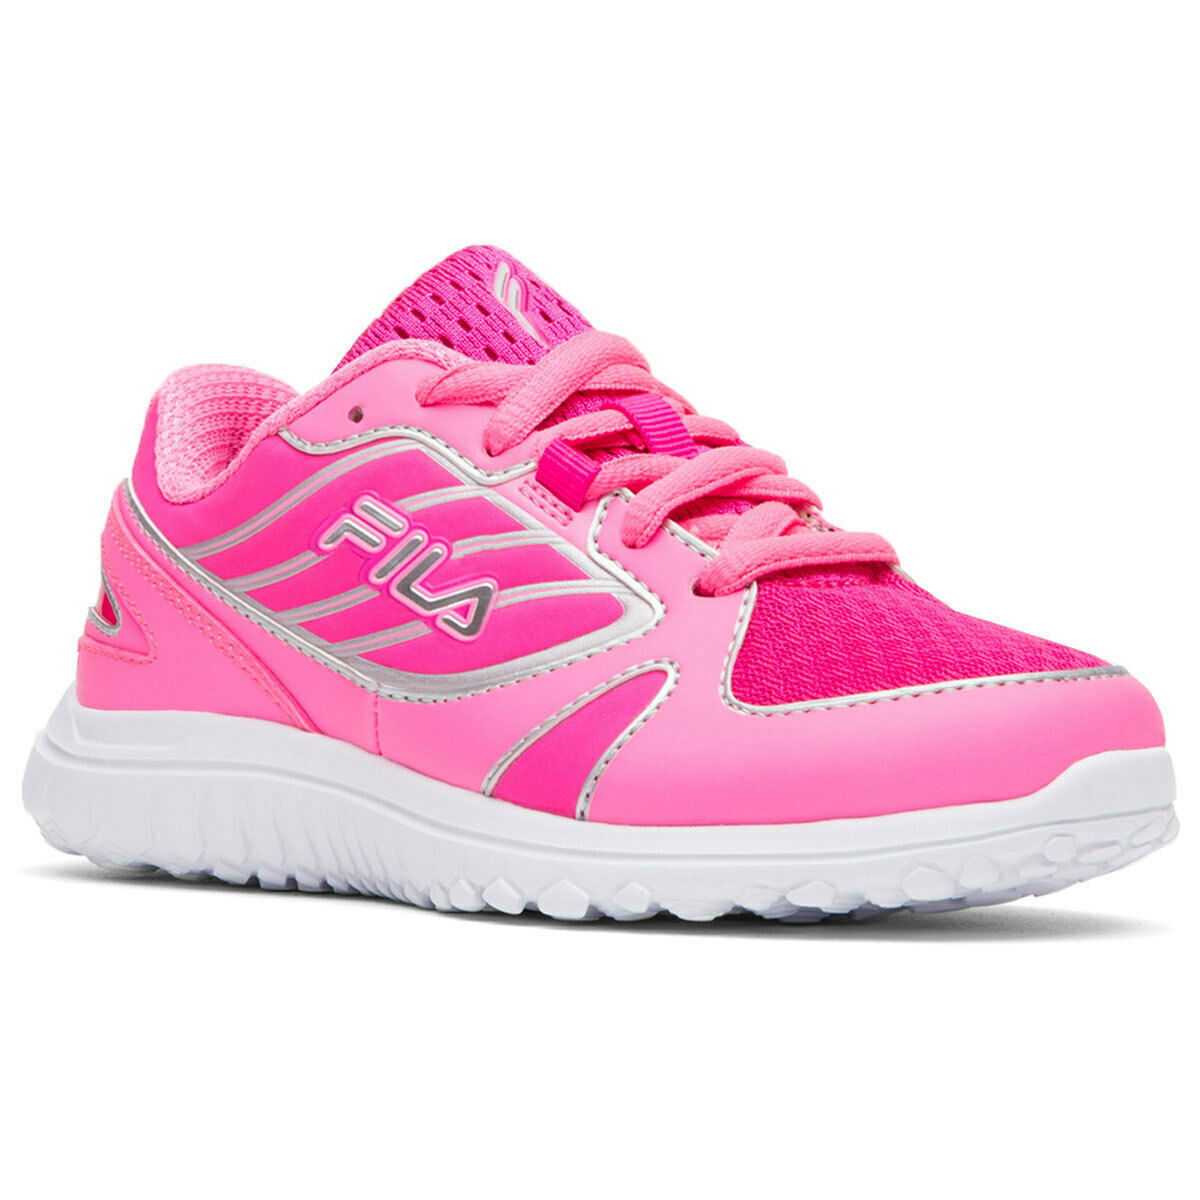 Fila Girl's Boomers Athletic Running Shoes and 50 similar items